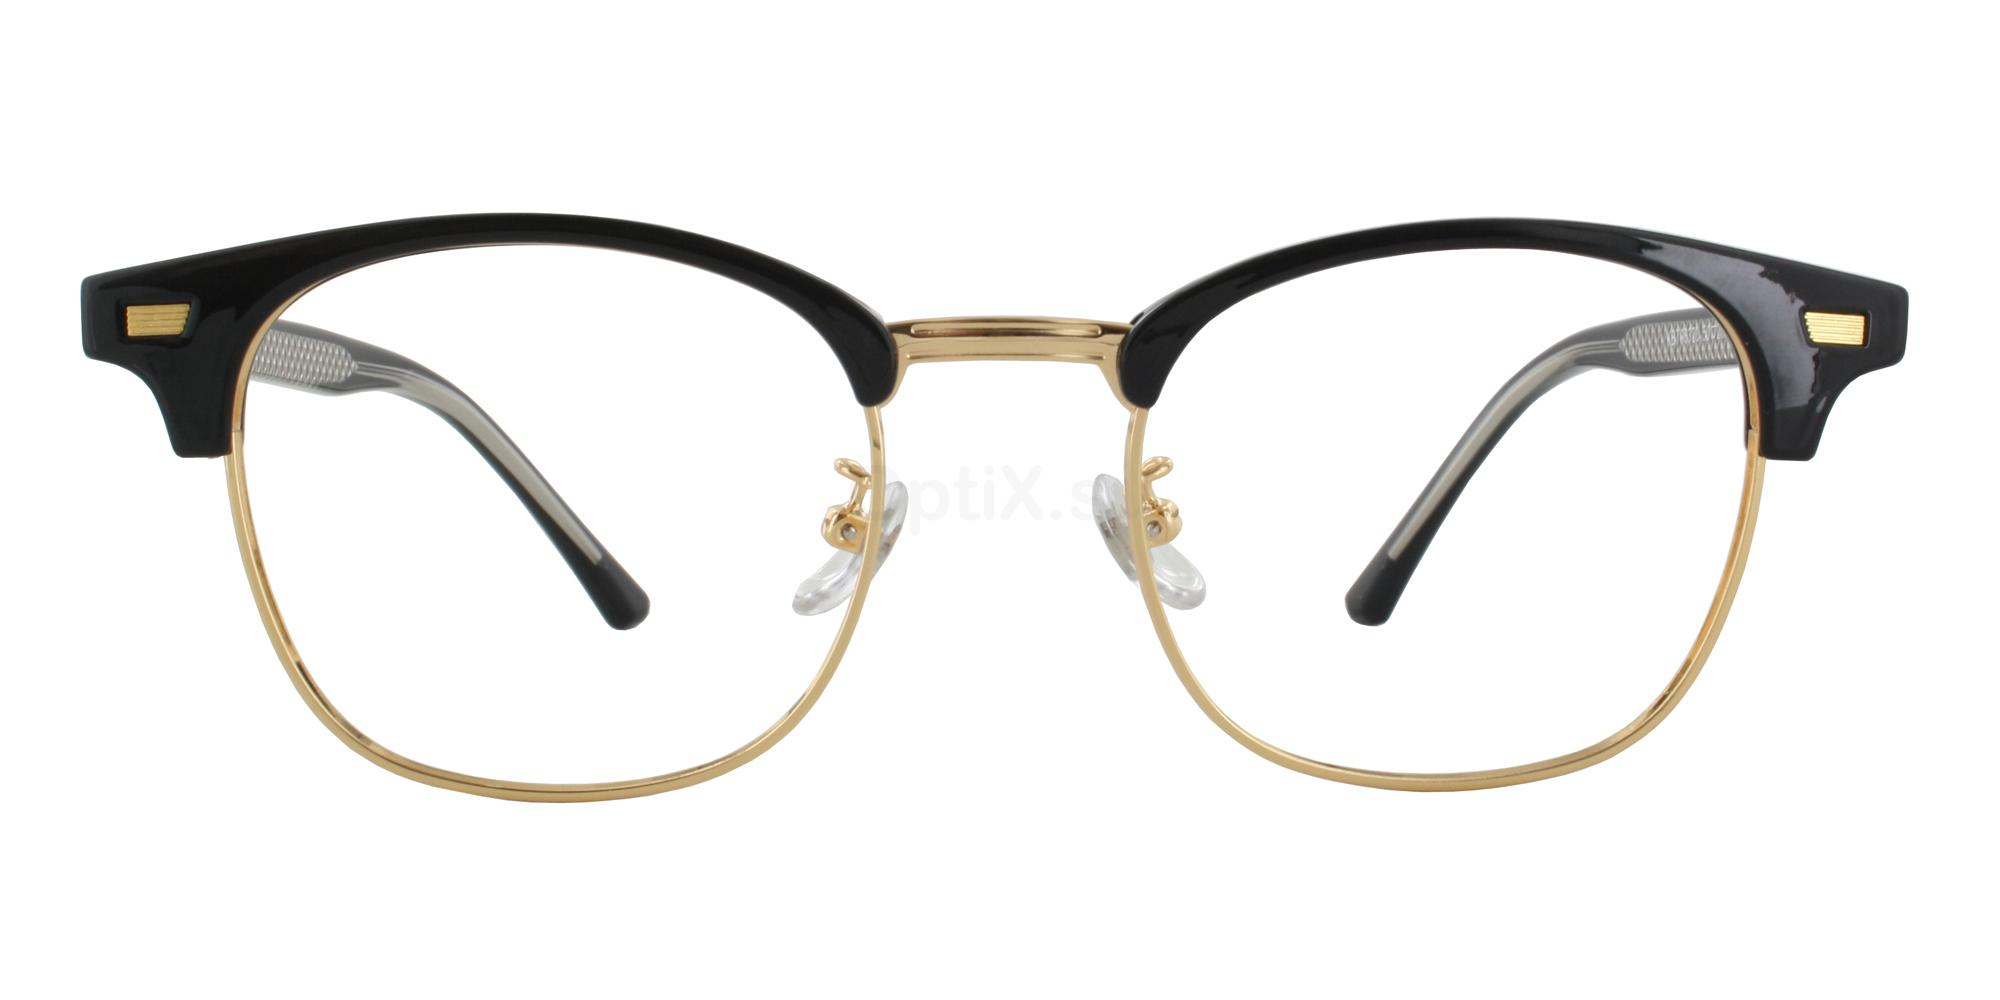 C1 KBT98320 Glasses, Infinity